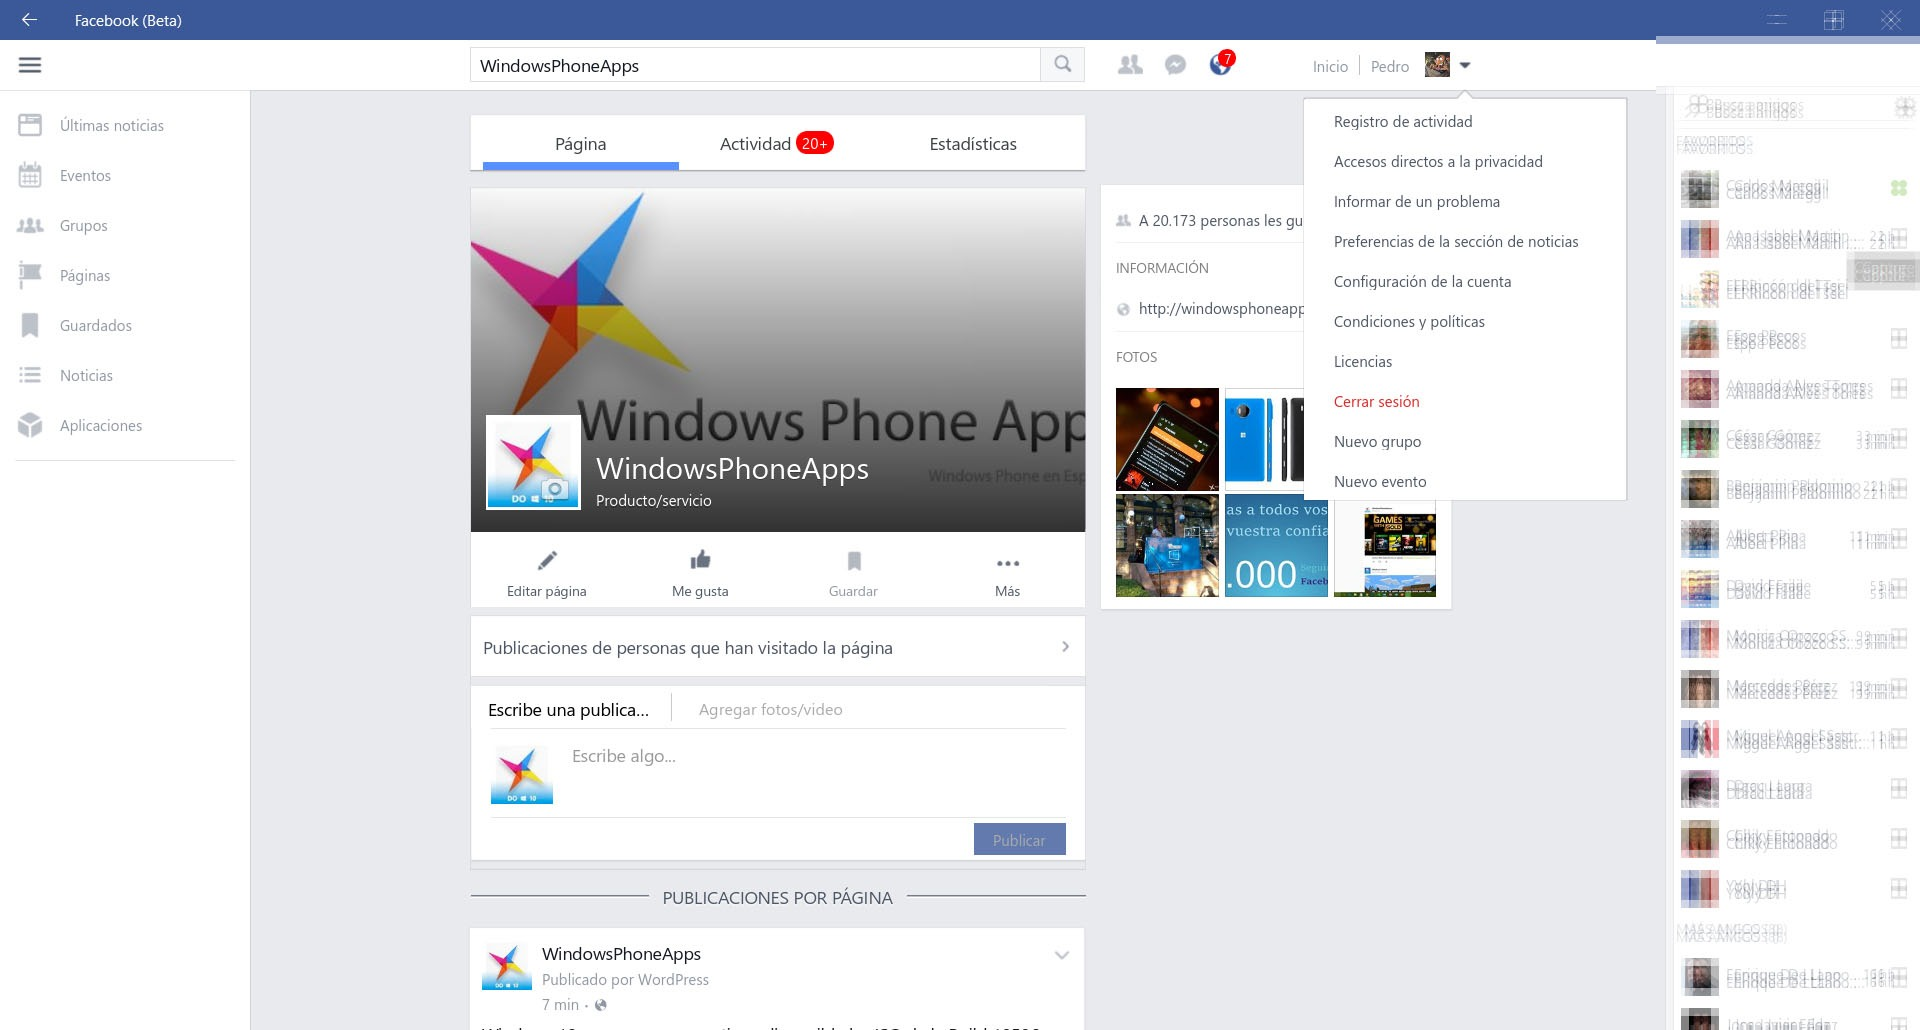 facebook beta windows 10 4